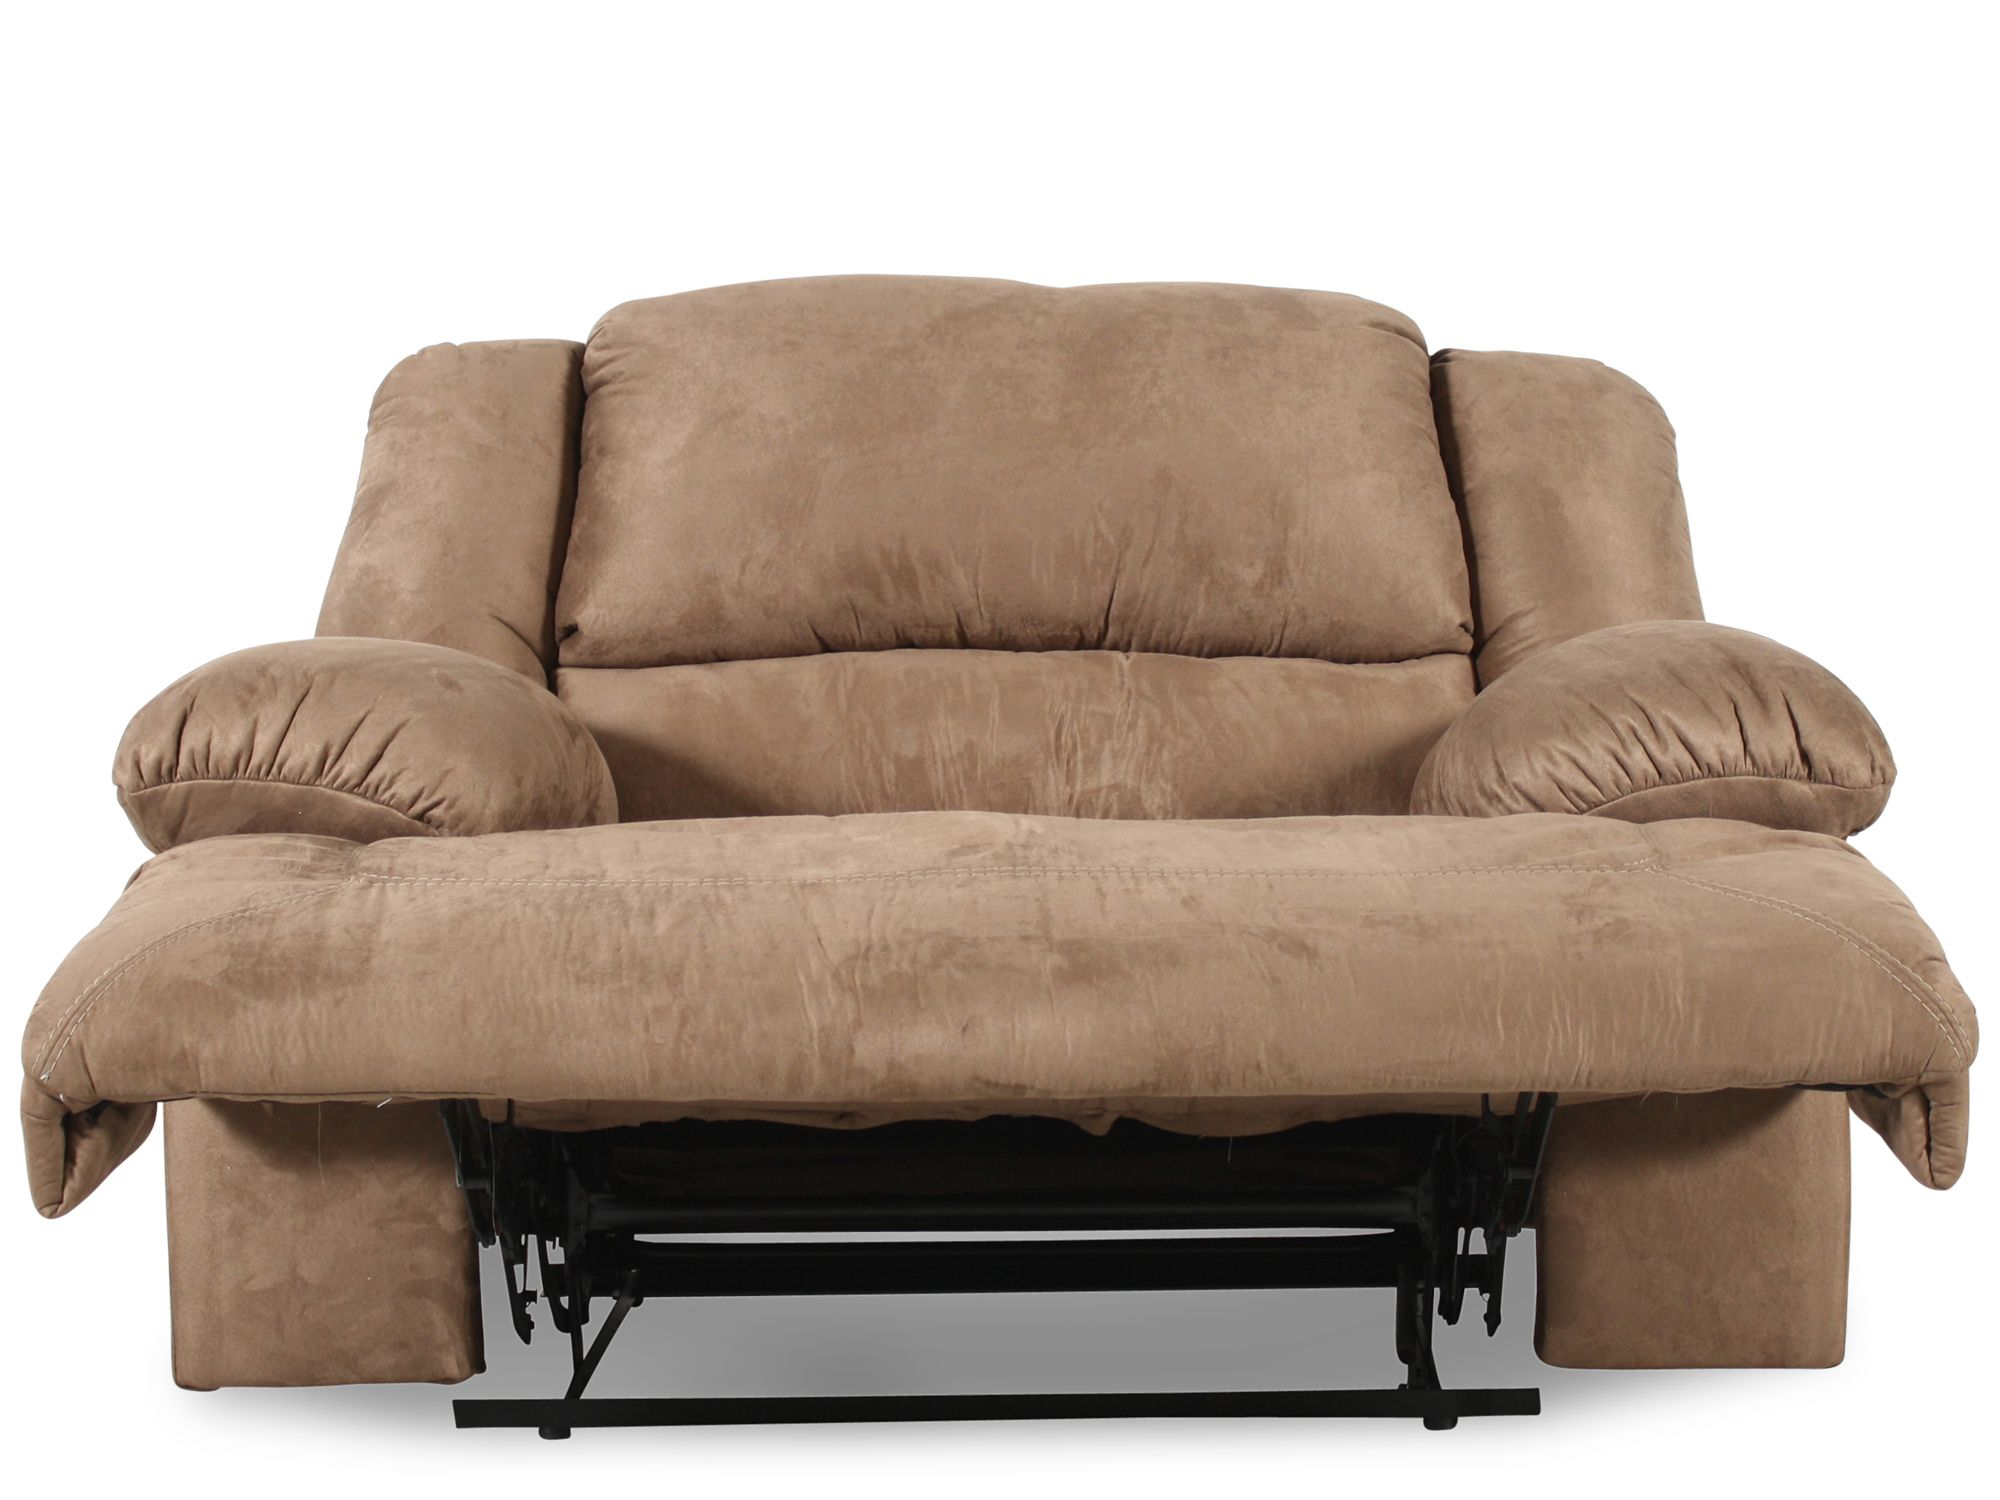 Oversized recliner mathis brothers for Oversized chair